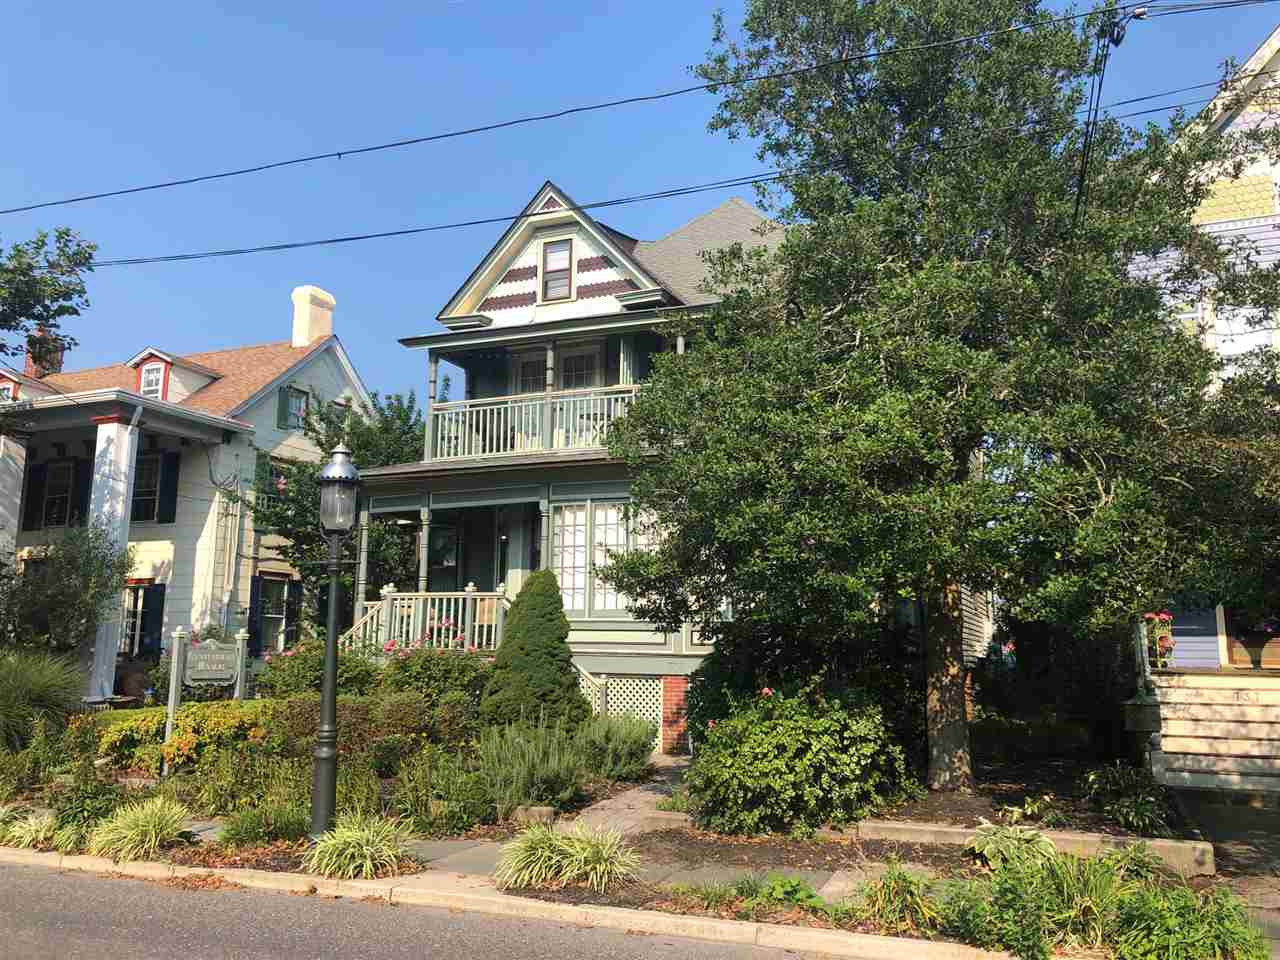 735 Washington Street - Cape May